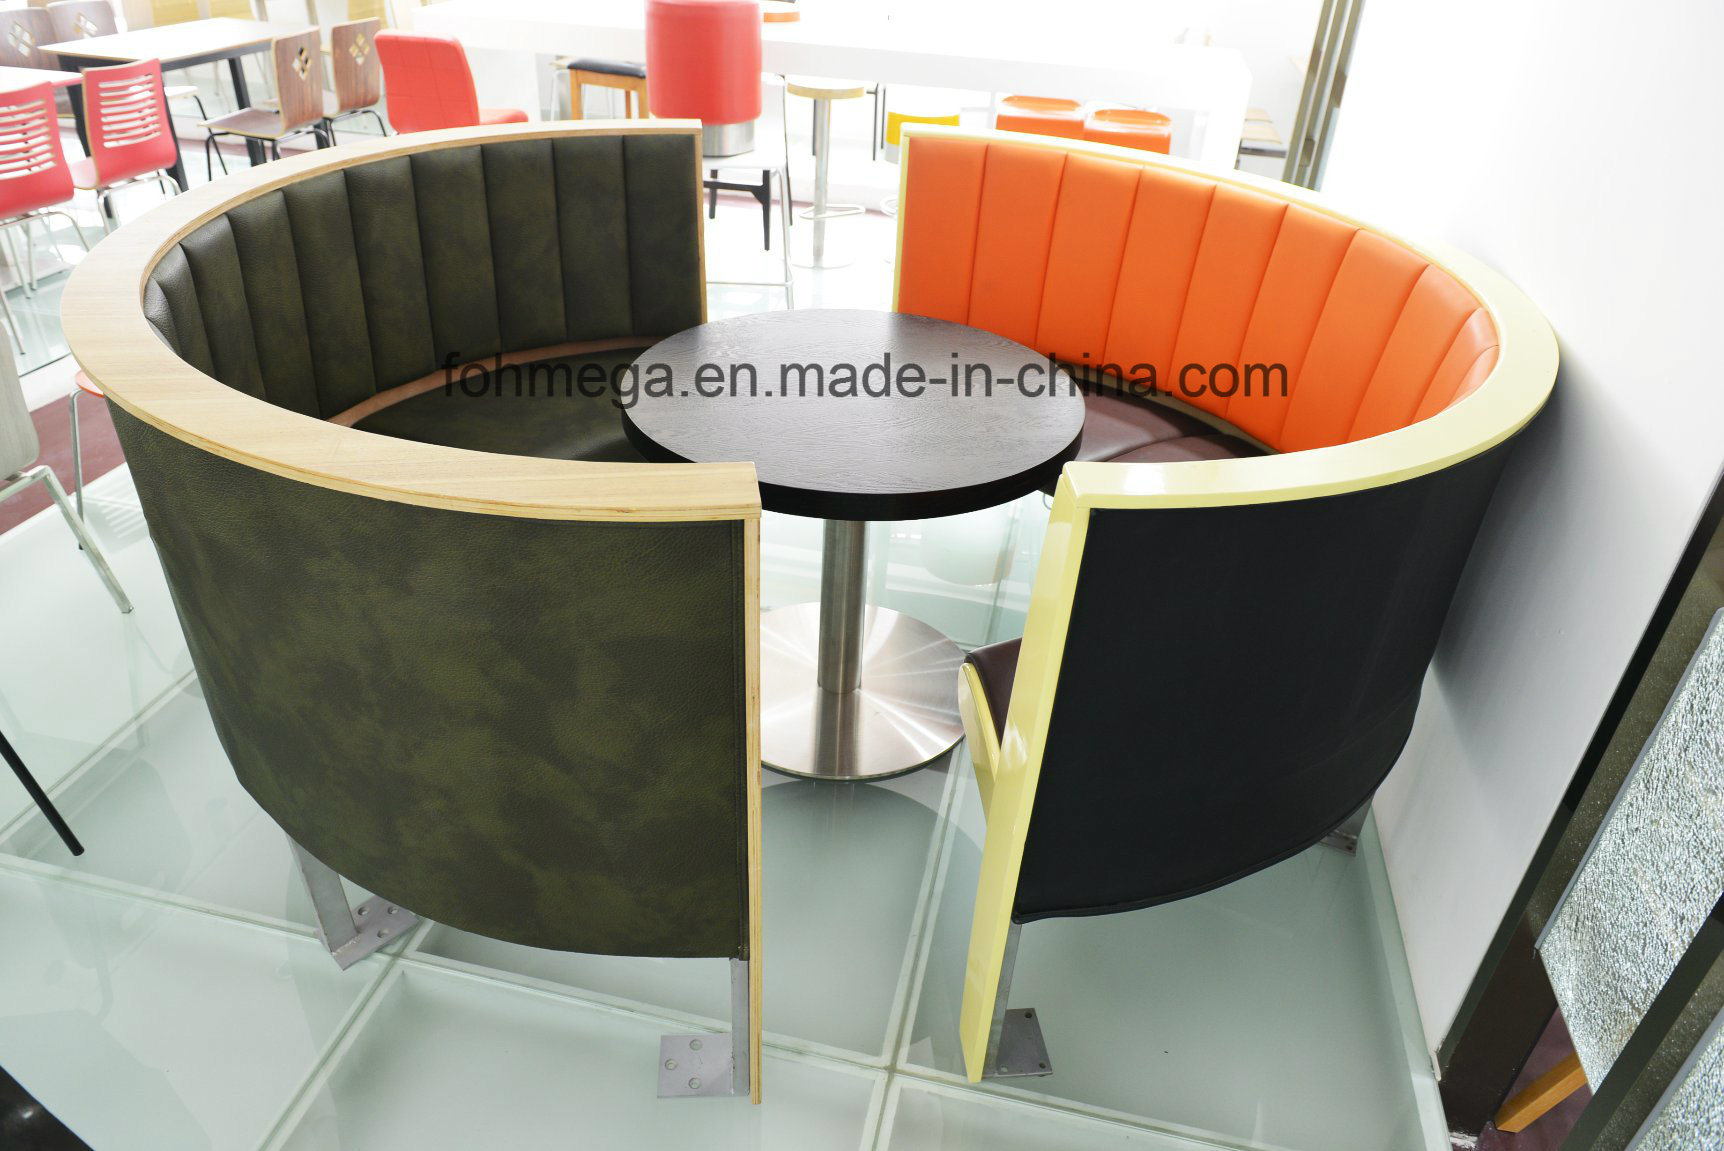 China Round Shape Customized Size Sofa Booth Seating For Cafe Shisha Couch